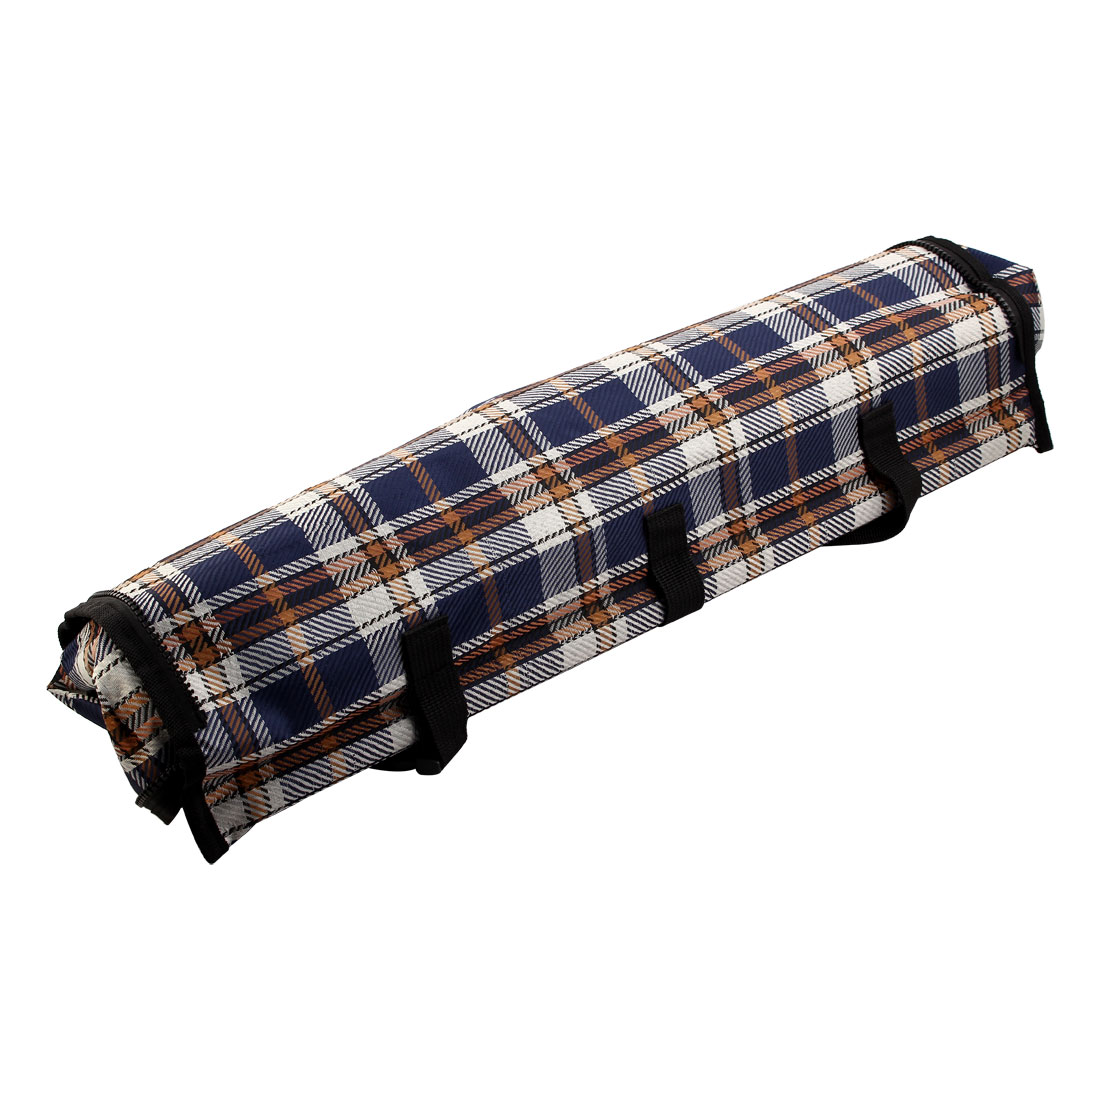 Outdoor Travel Plaid Print Non-Slip Pet Dog Car Protector Mat Cushion Seat Cover